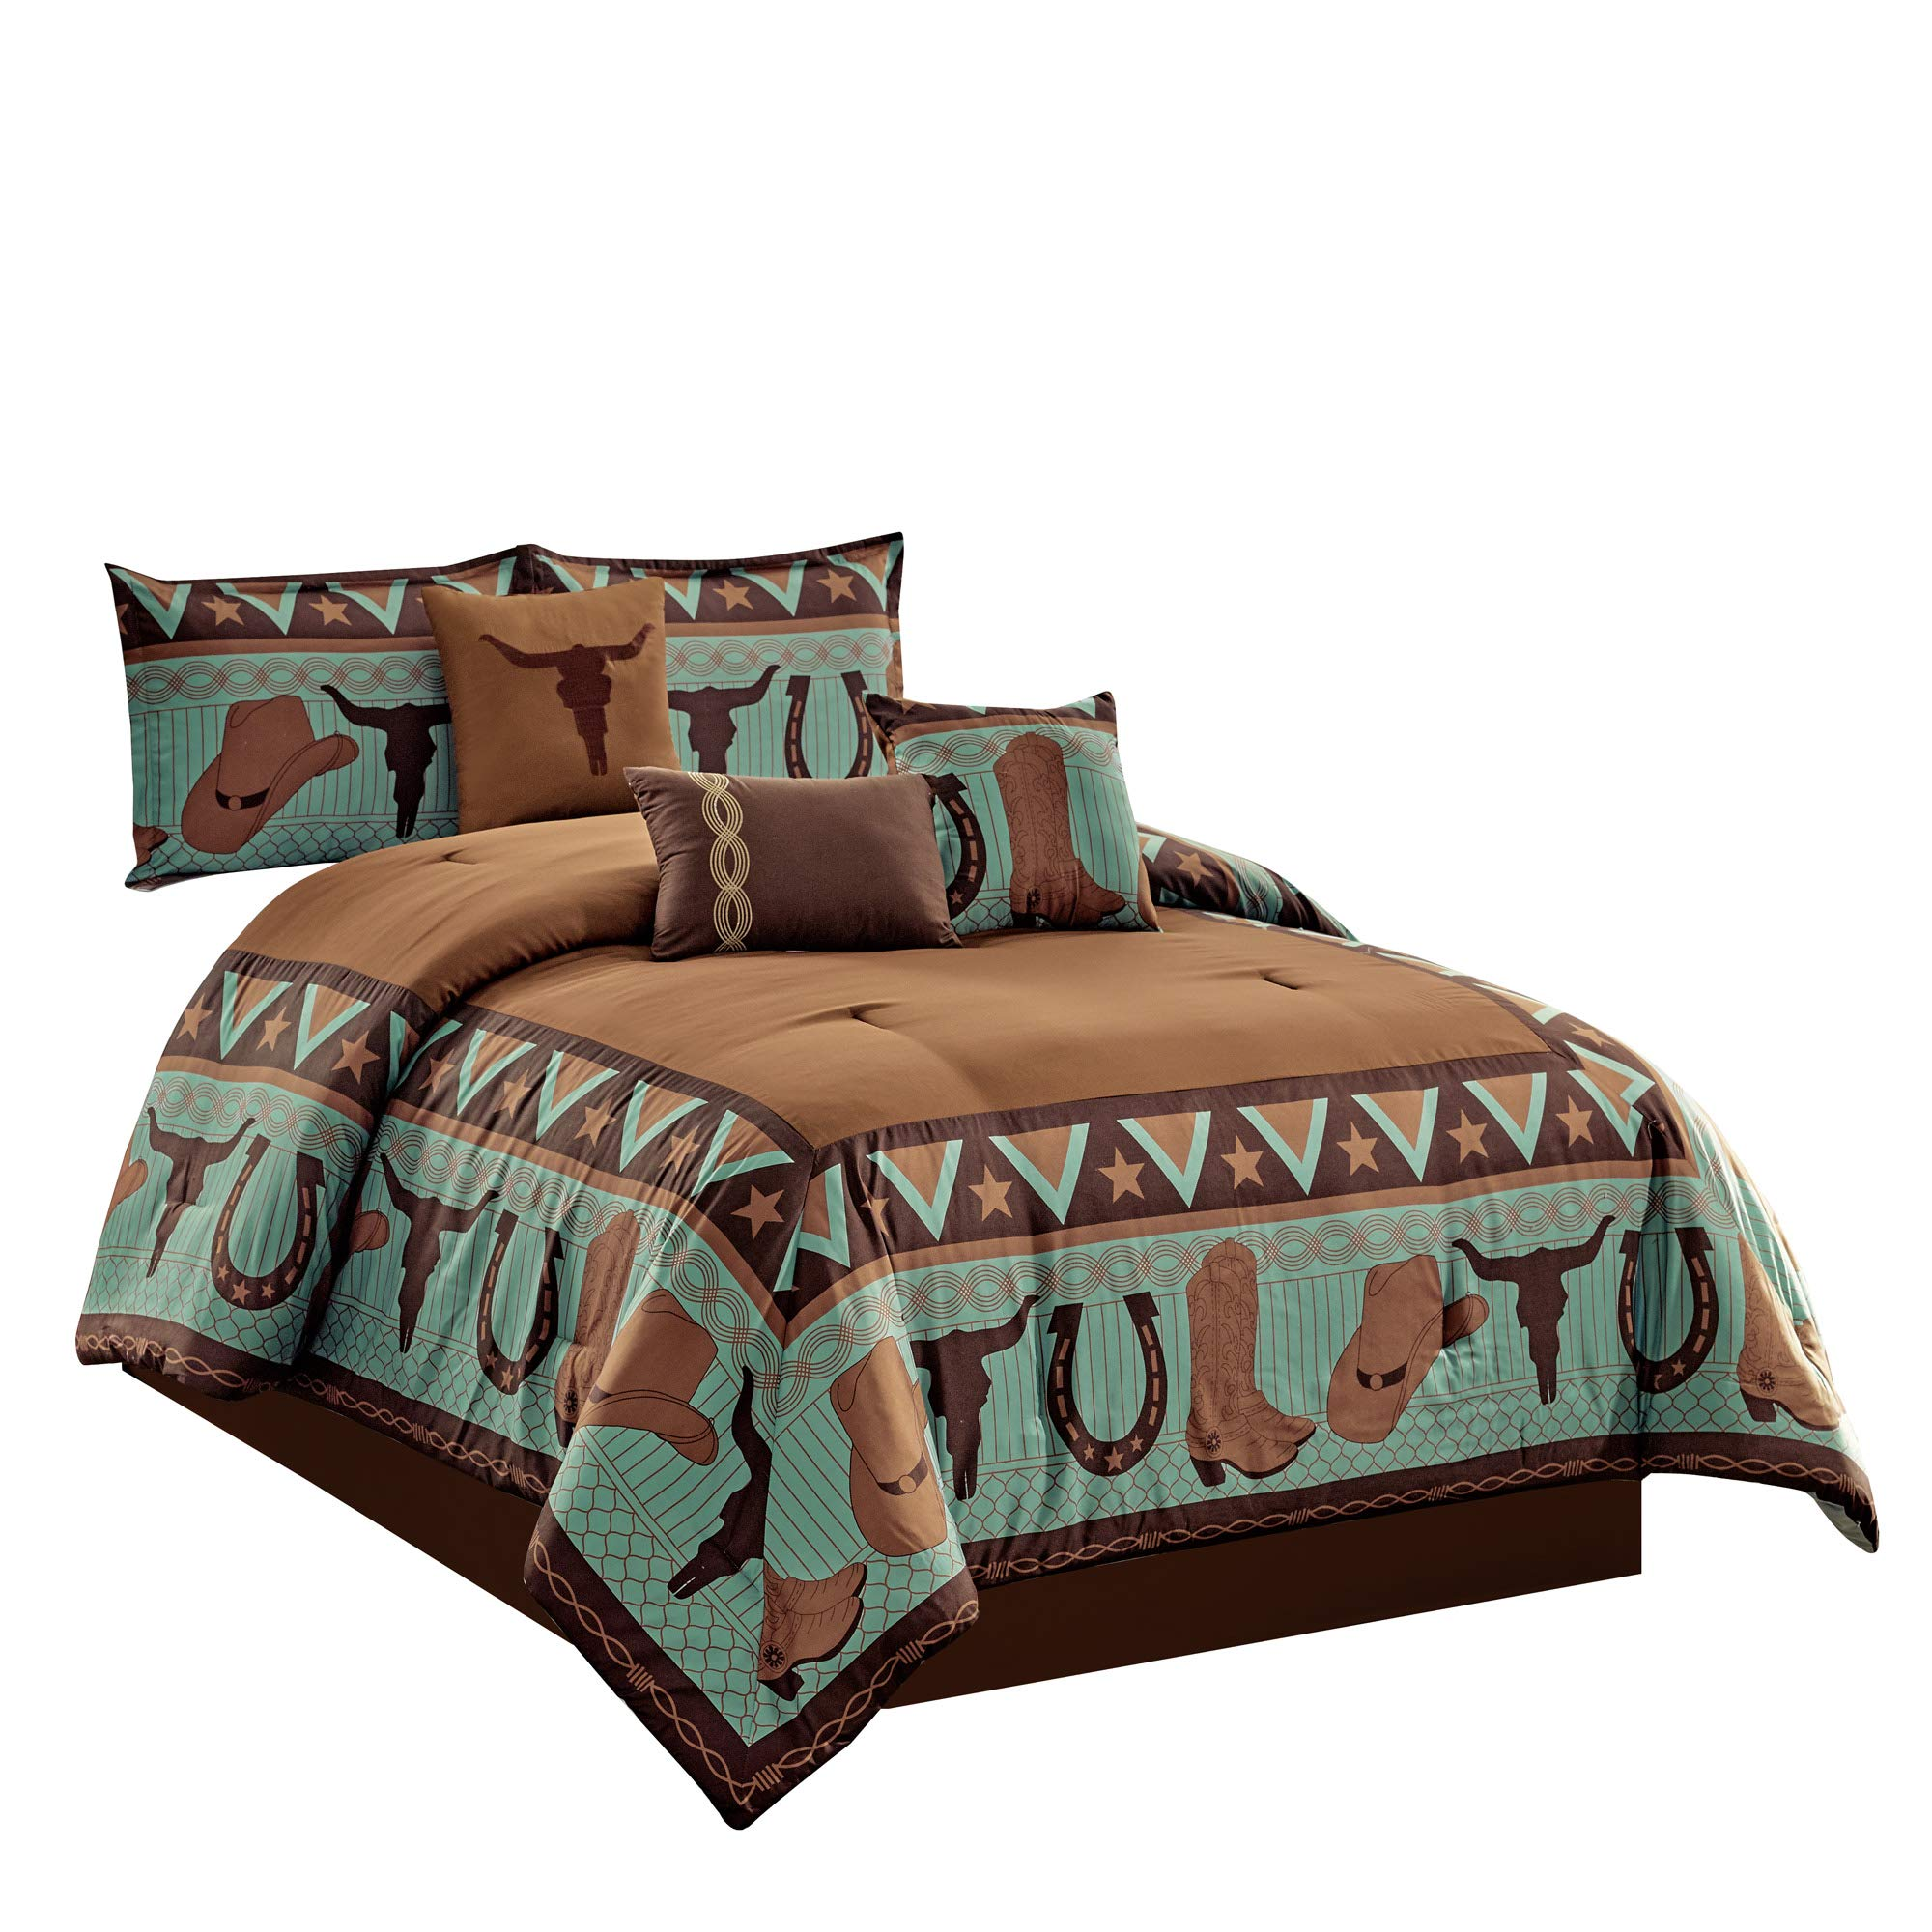 Wpm World Products Mart 7 Piece Cabin Lodge Comforter Set Brown Teal Horseshoe Horse Barb Wired Cow Boy Hat Boot Print Southwestern Cowboy King Size Bedding Western King